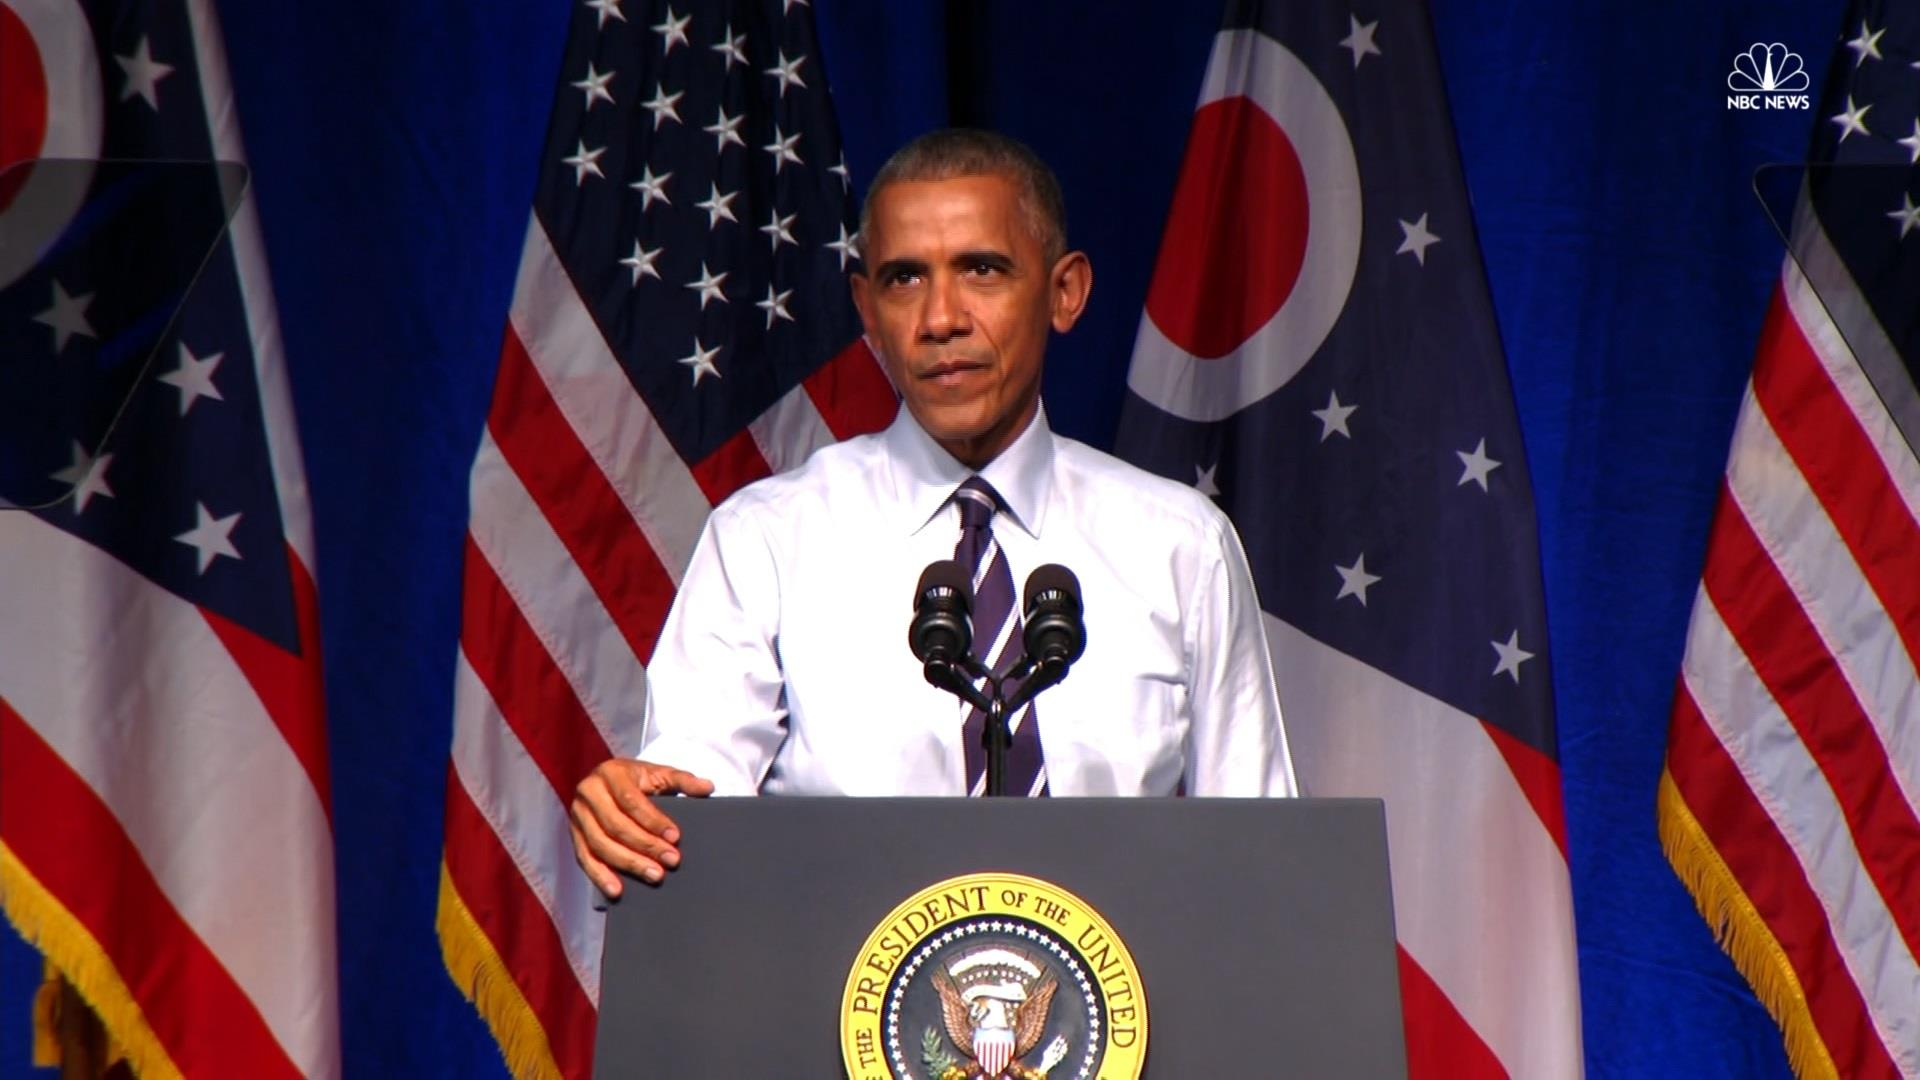 Pres. Obama jokes about age to protester